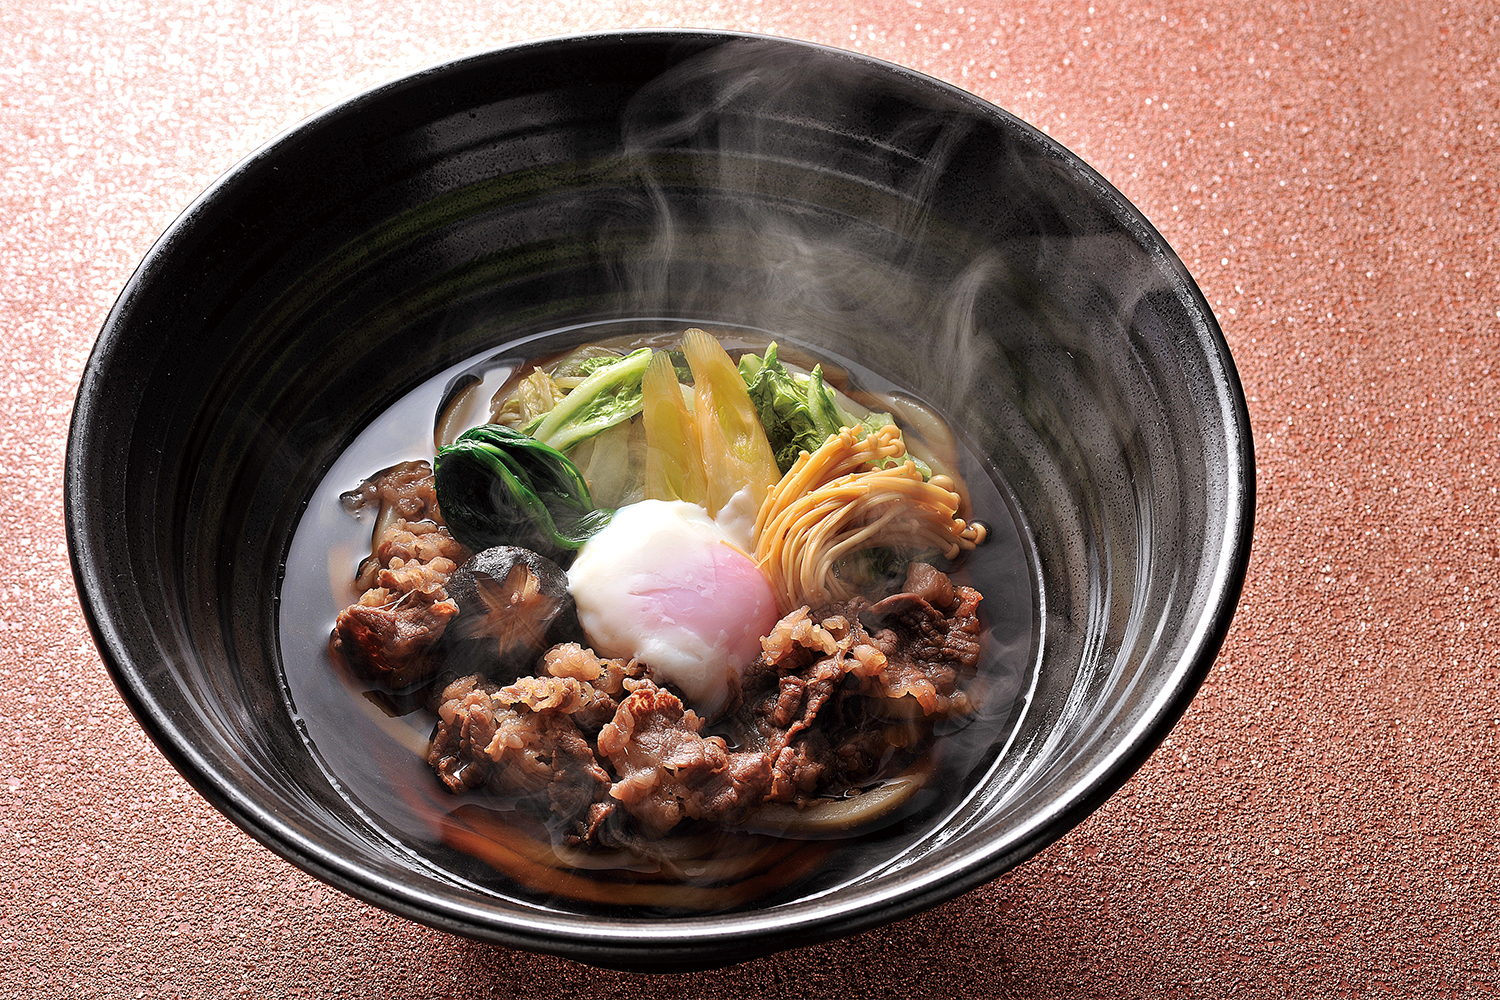 Bowl of a Japanese soup, featuring a transparent brown broth, thinly sliced beef, thick udon noodles, a soft-boiled egg, and vegetables